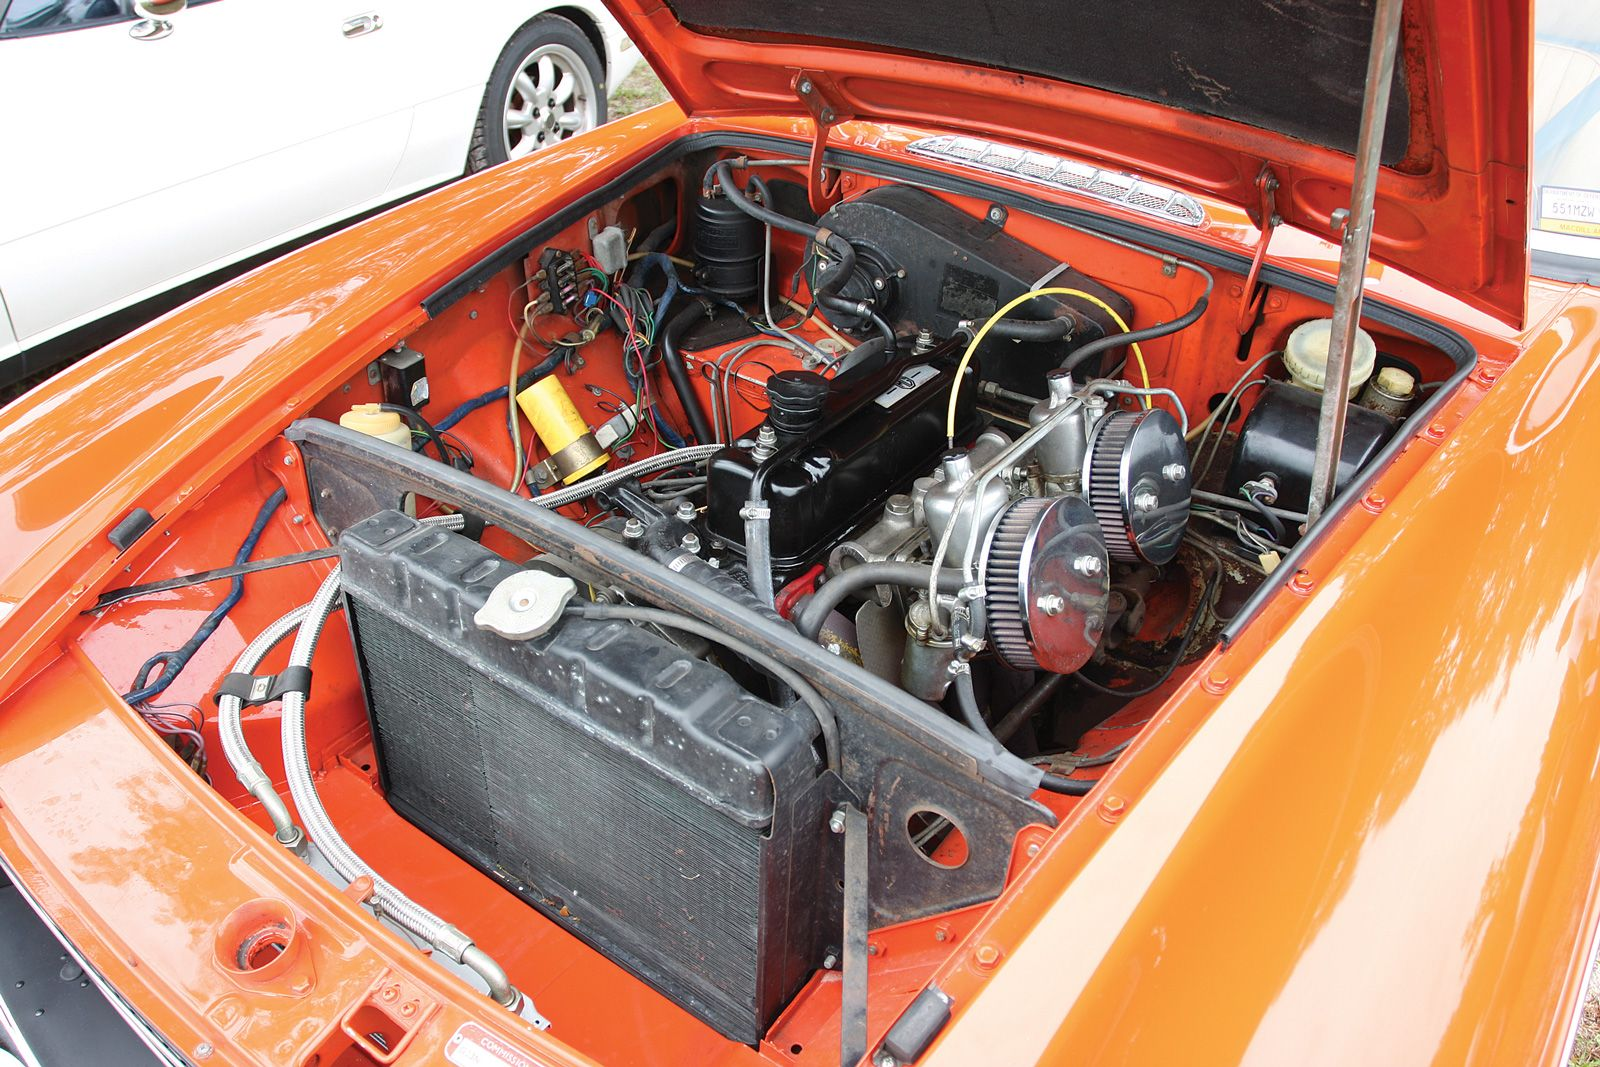 Headlight Wiring For Mg Midget Together With Mg Midget Wiring Diagram